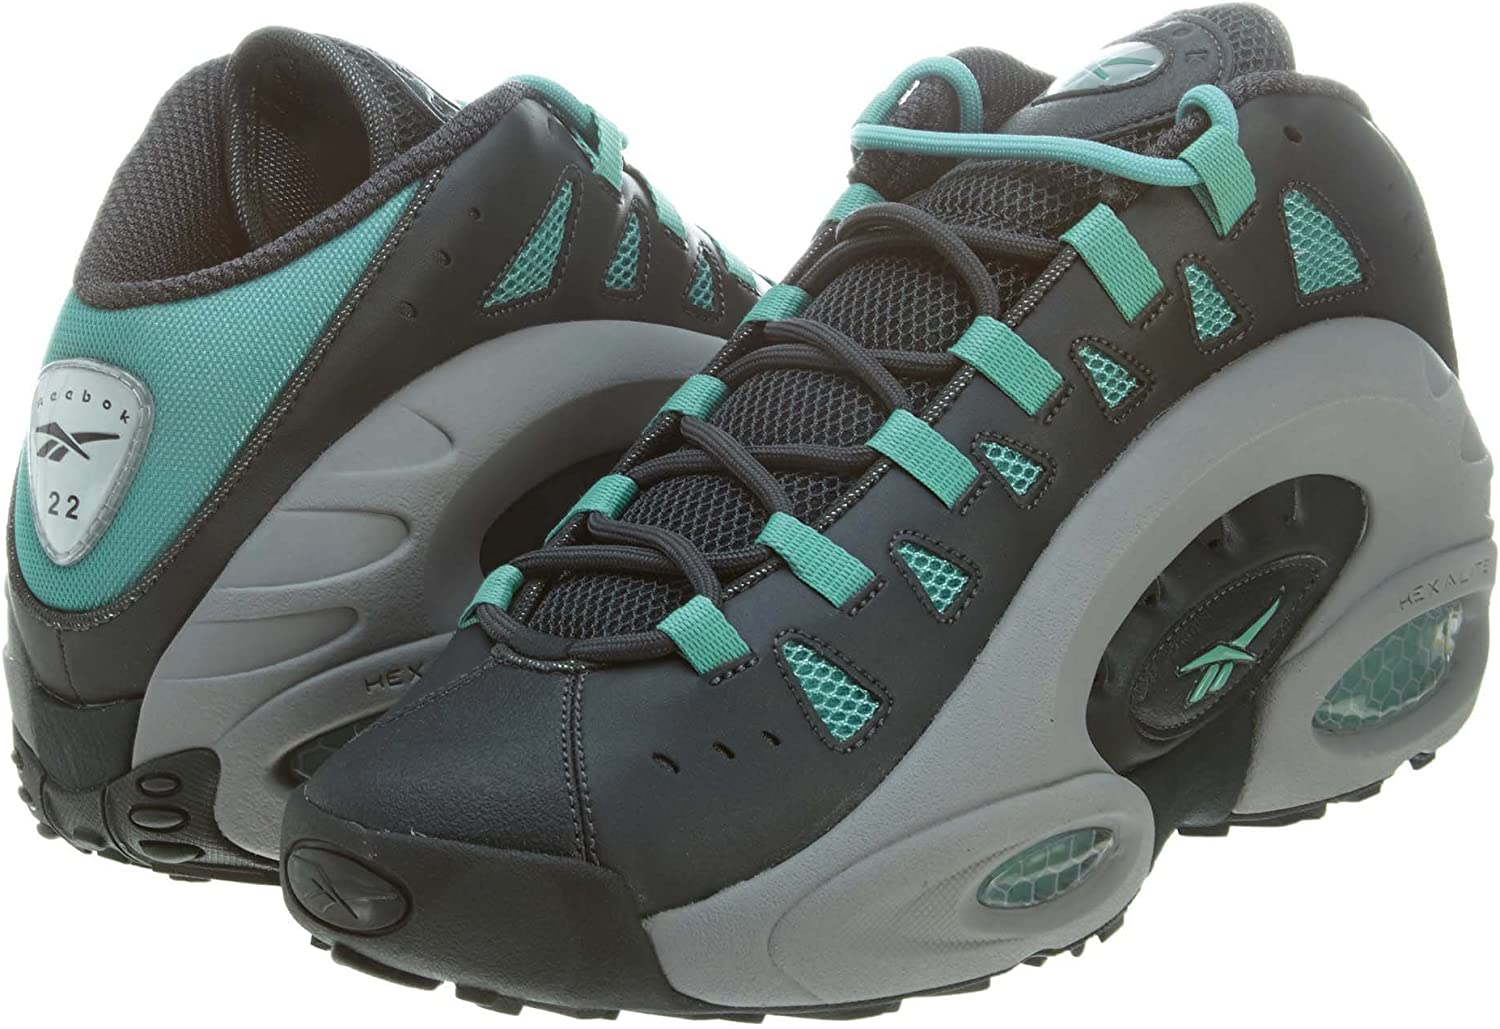 Deportista Hundimiento Turista  Reebok ES22 - Men's (sz. 10.5Width - D, Gravel/Tine Grey/Jadite):  Amazon.co.uk: Shoes & Bags